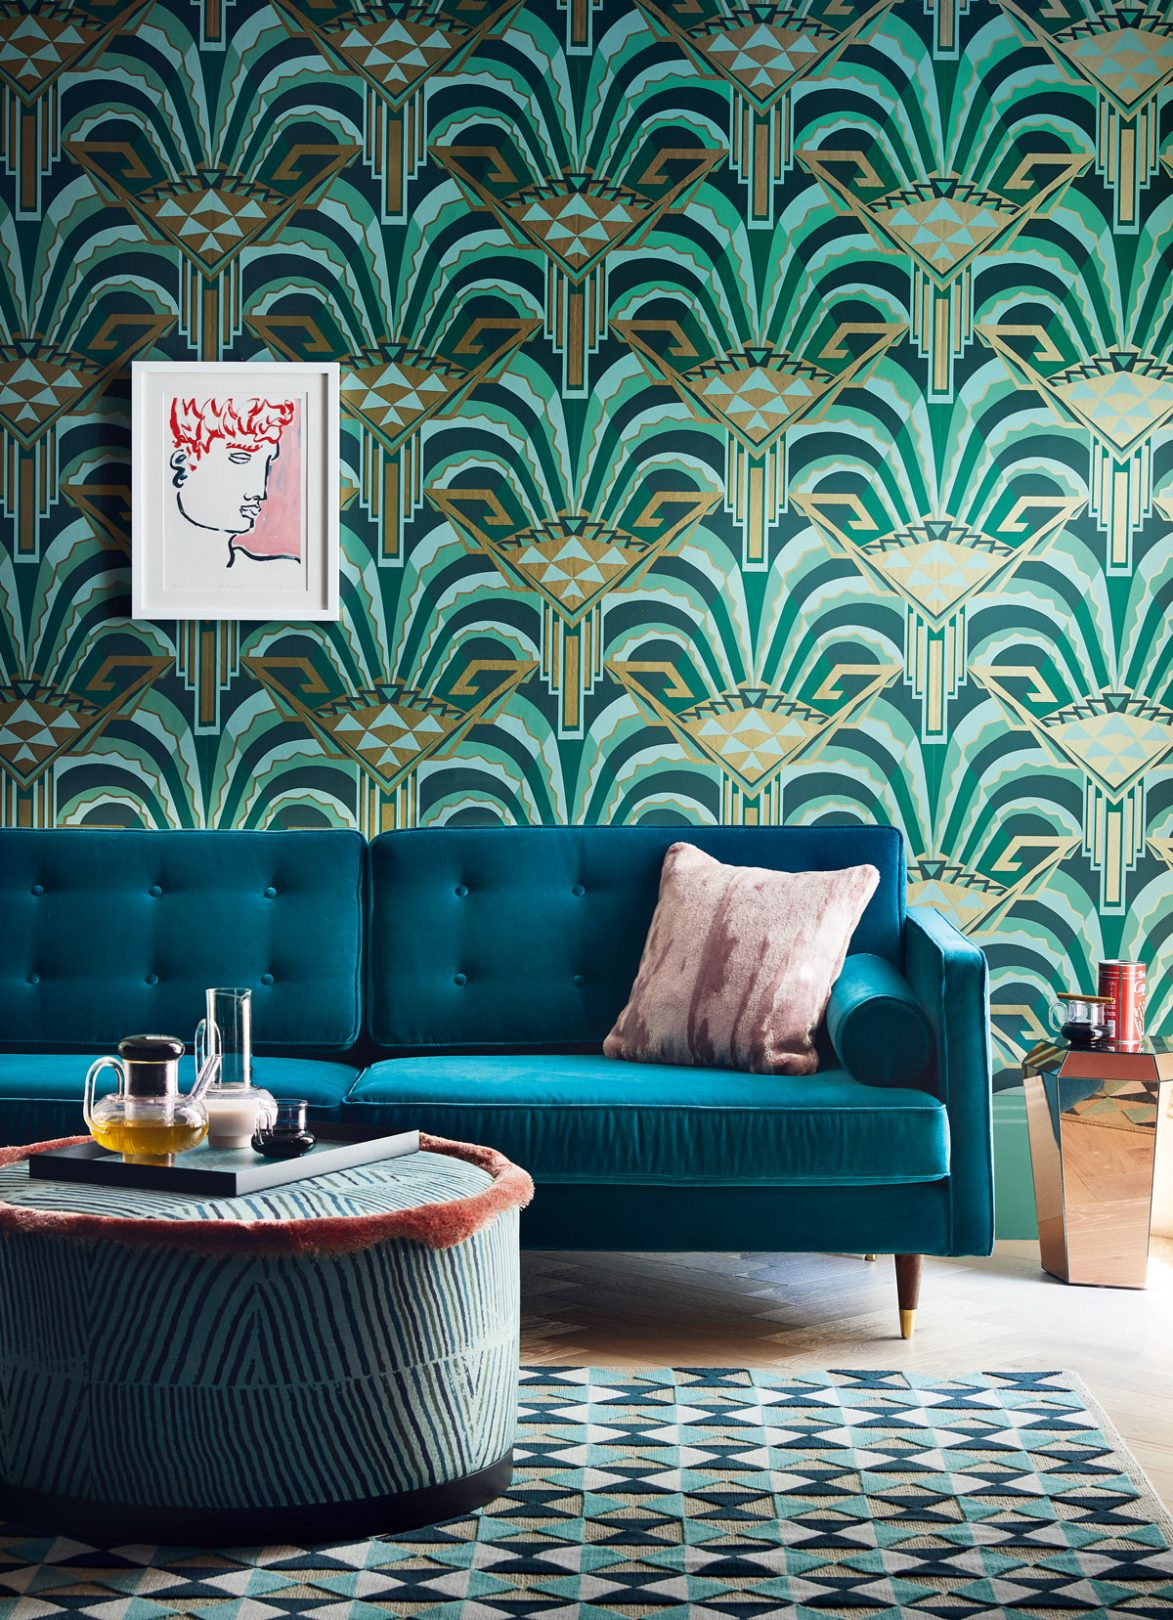 Fabulous Art Deco wall covering with teal velvet sofa